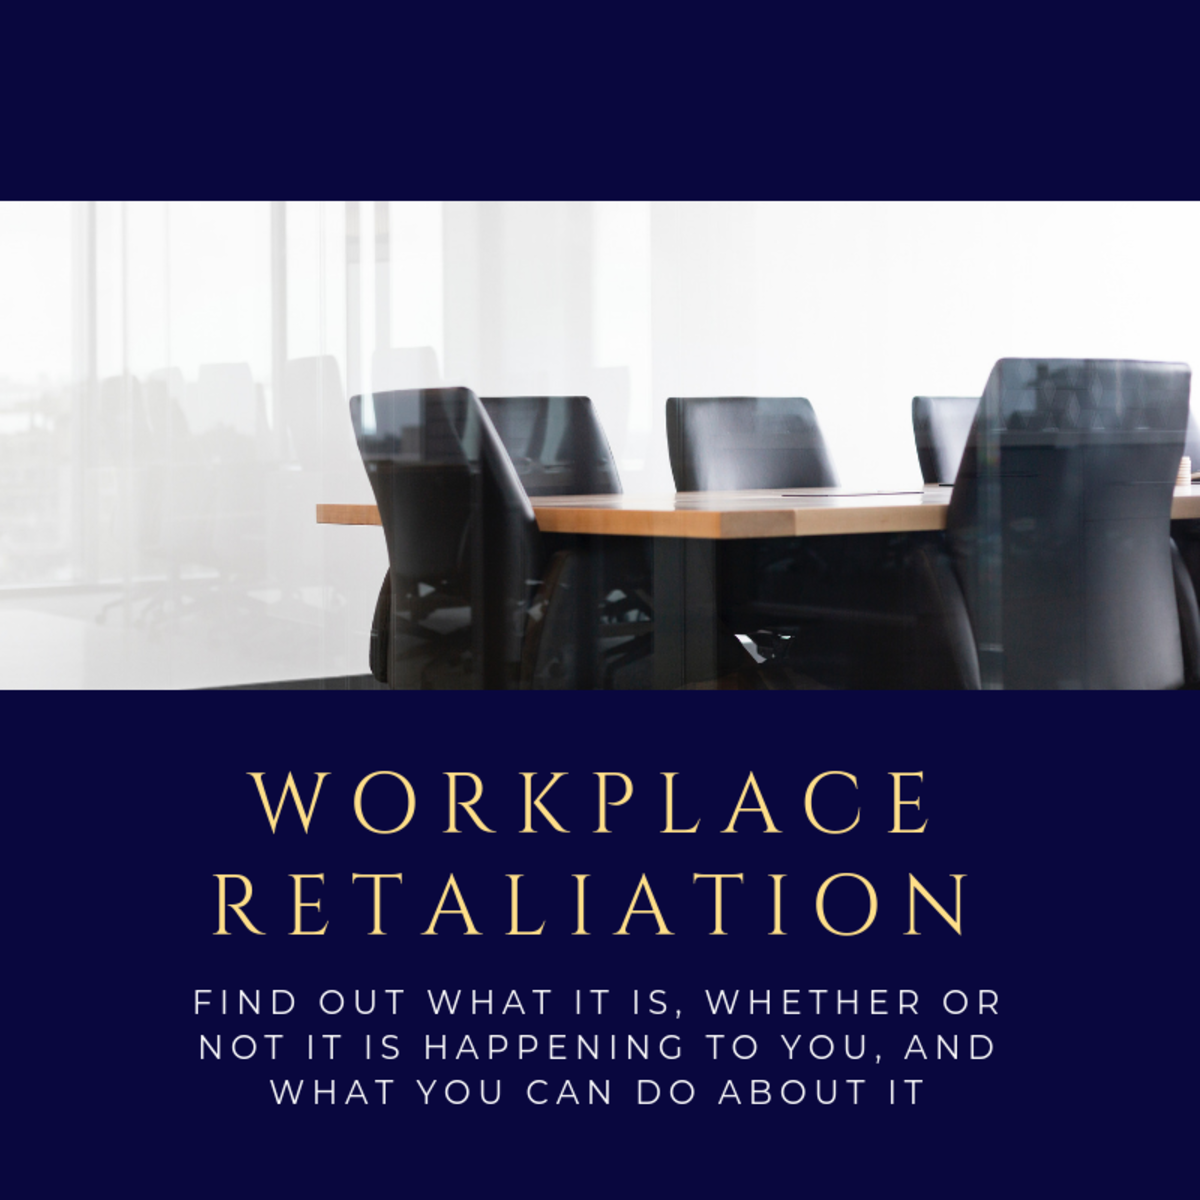 This guide will provide you with the information you need to know about workplace retaliation, so you can determine whether or not it's happening to you and what you can do about it.